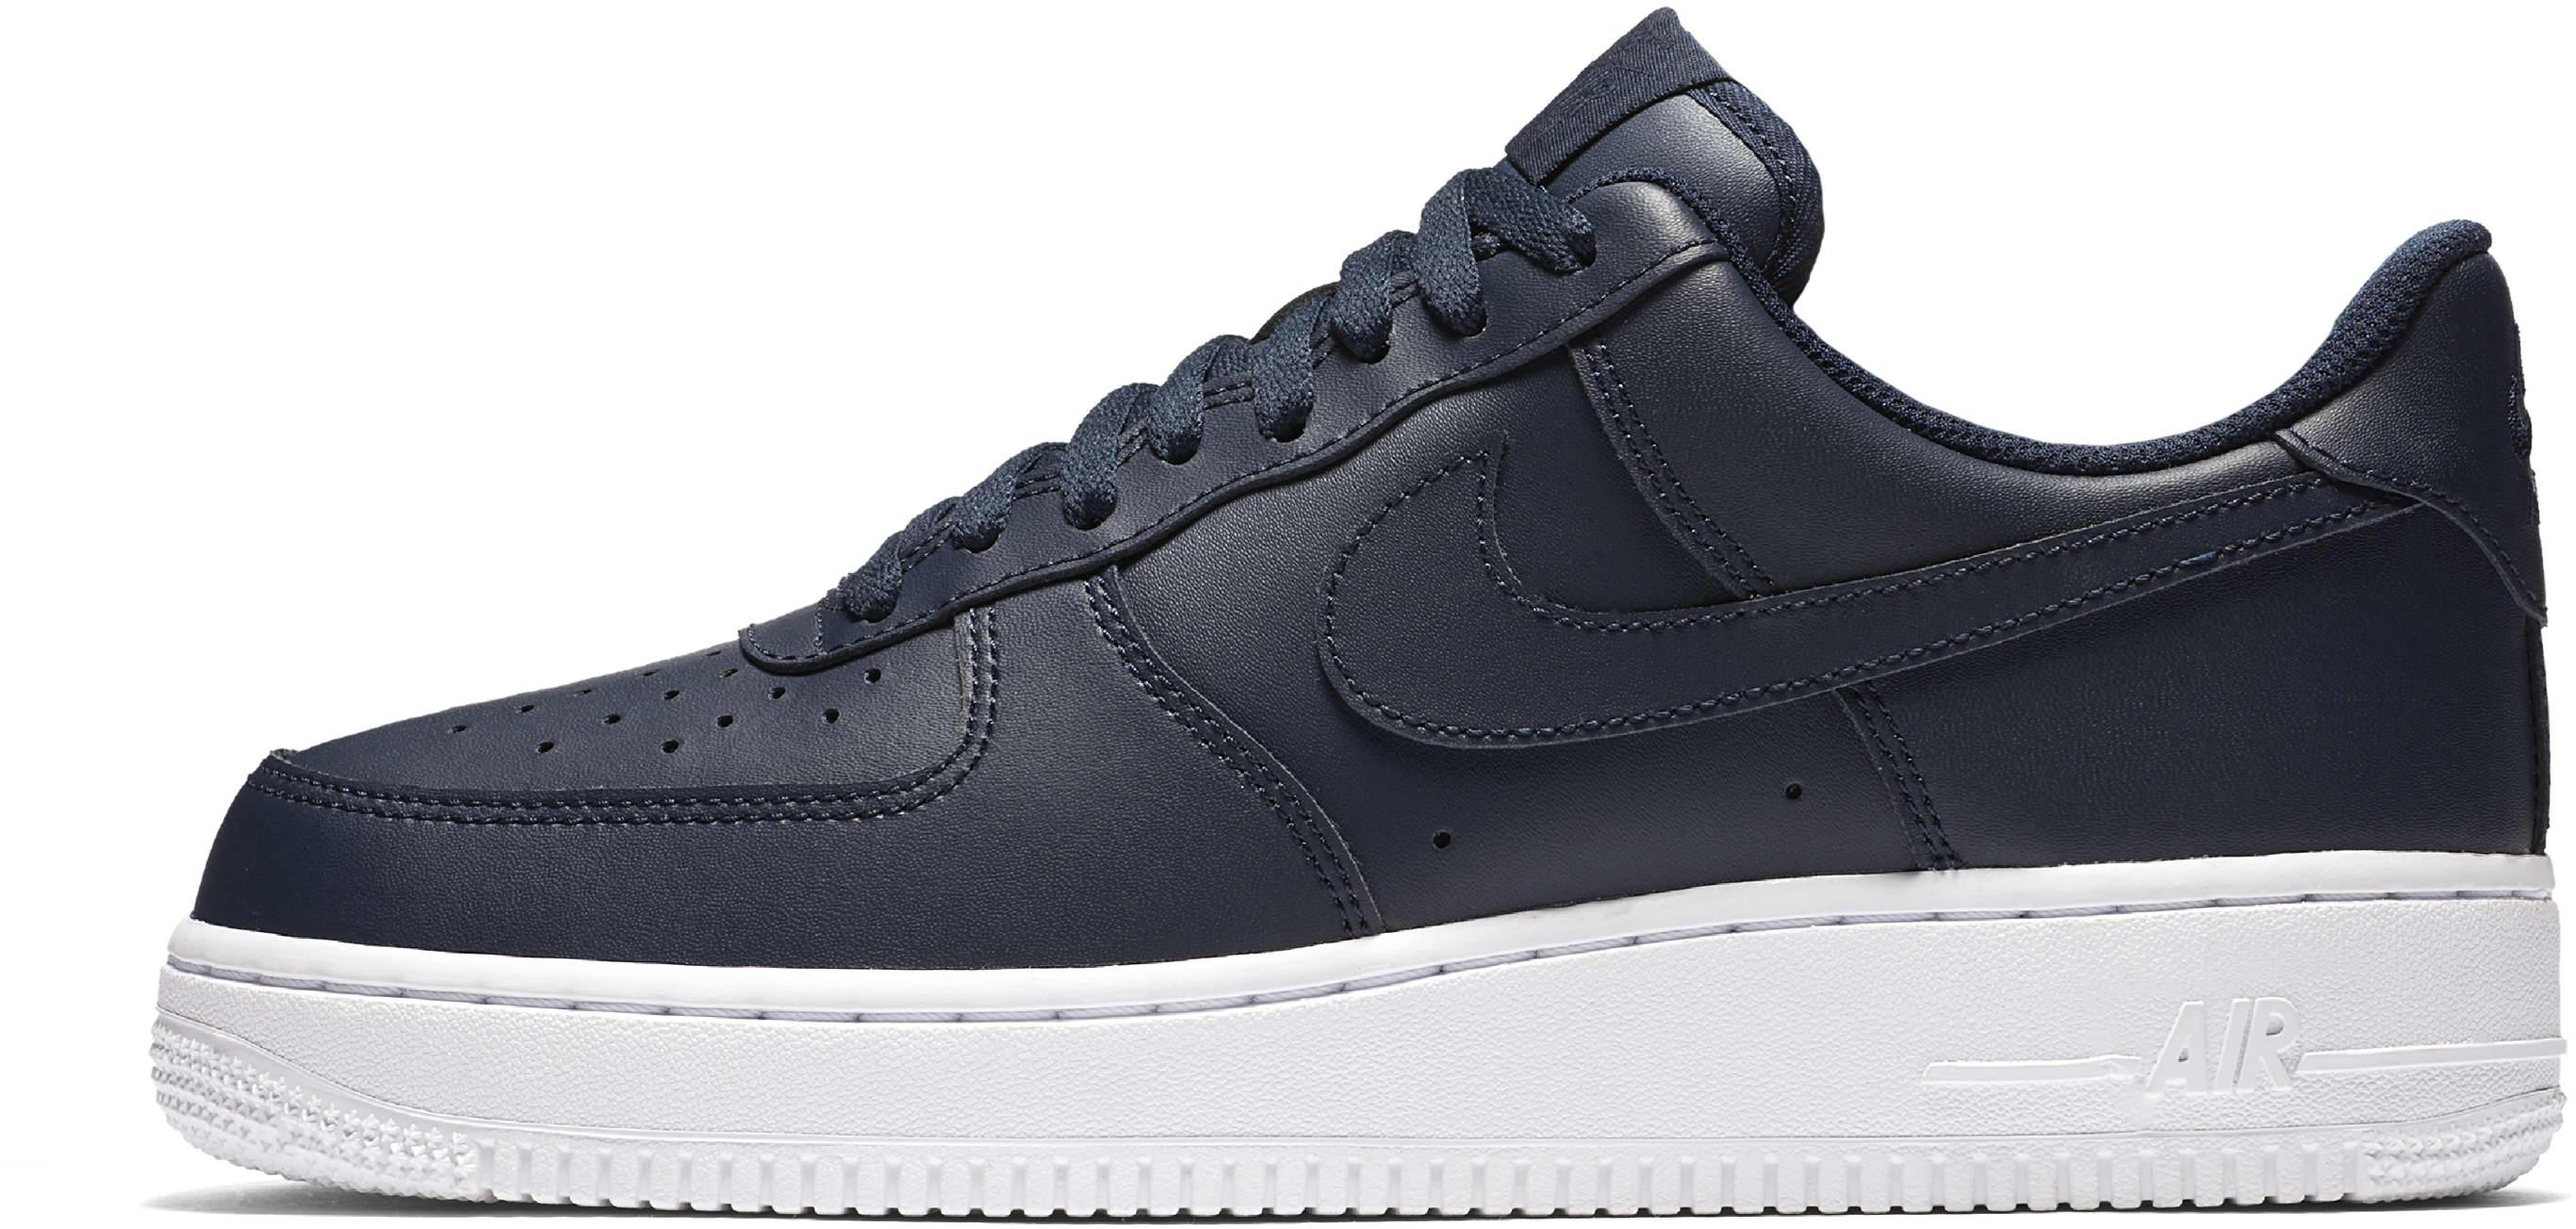 Nike Air Force 1 07 Obsidian/White/Obsidian